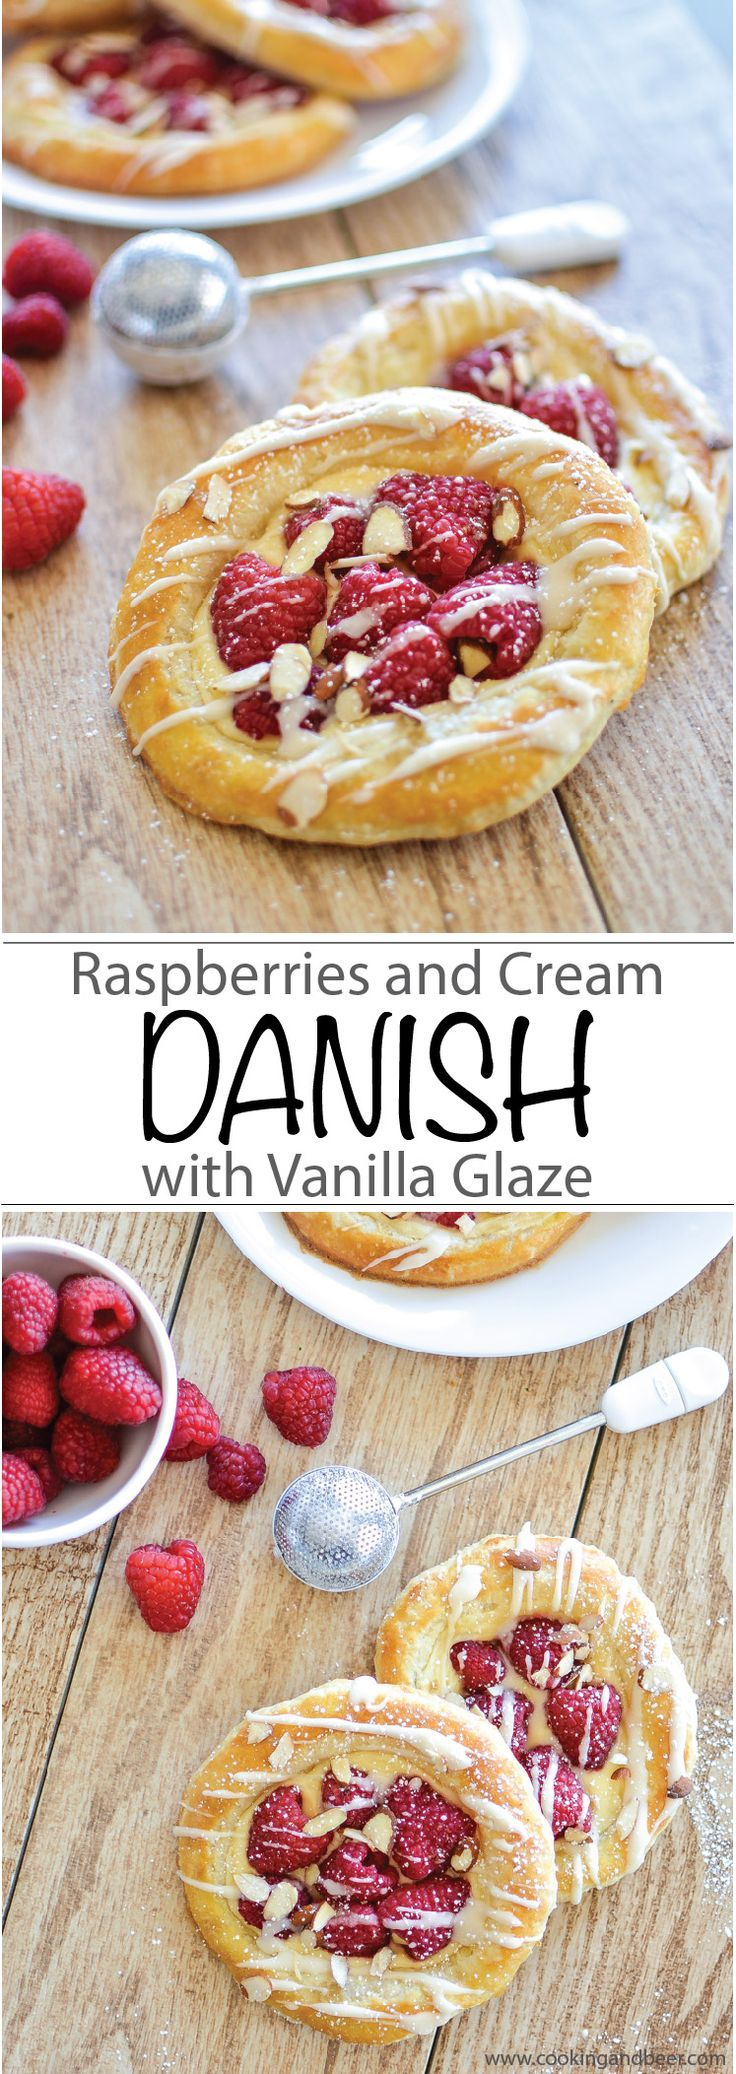 Danish is super simple to make! Raspberries and Cream Danish with Vanilla Glaze is the perfect sweet treat for Easter brunch!